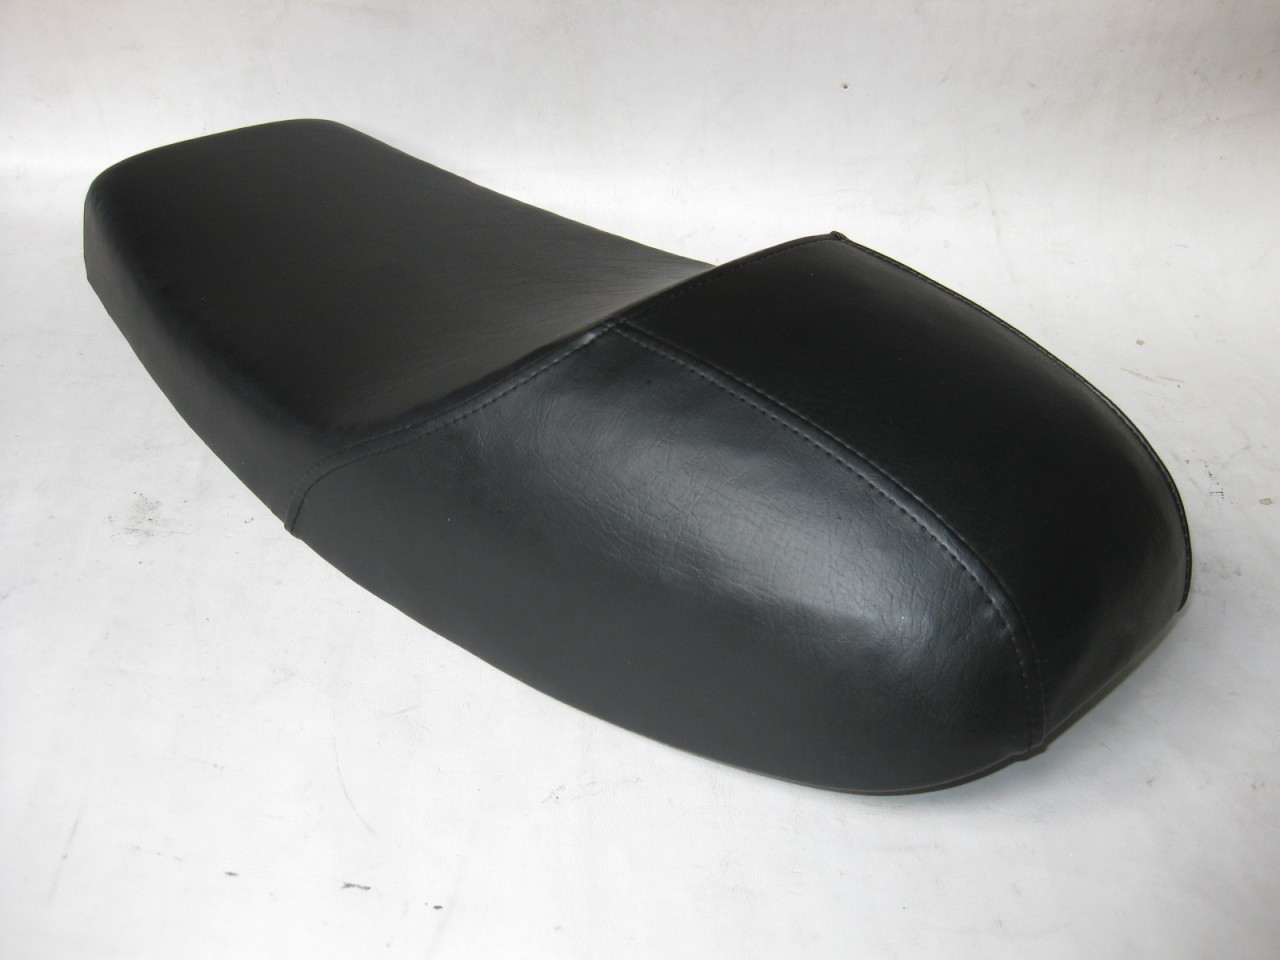 Honda CB350F cafe racer seat reproduce to Nos metal pan #4072